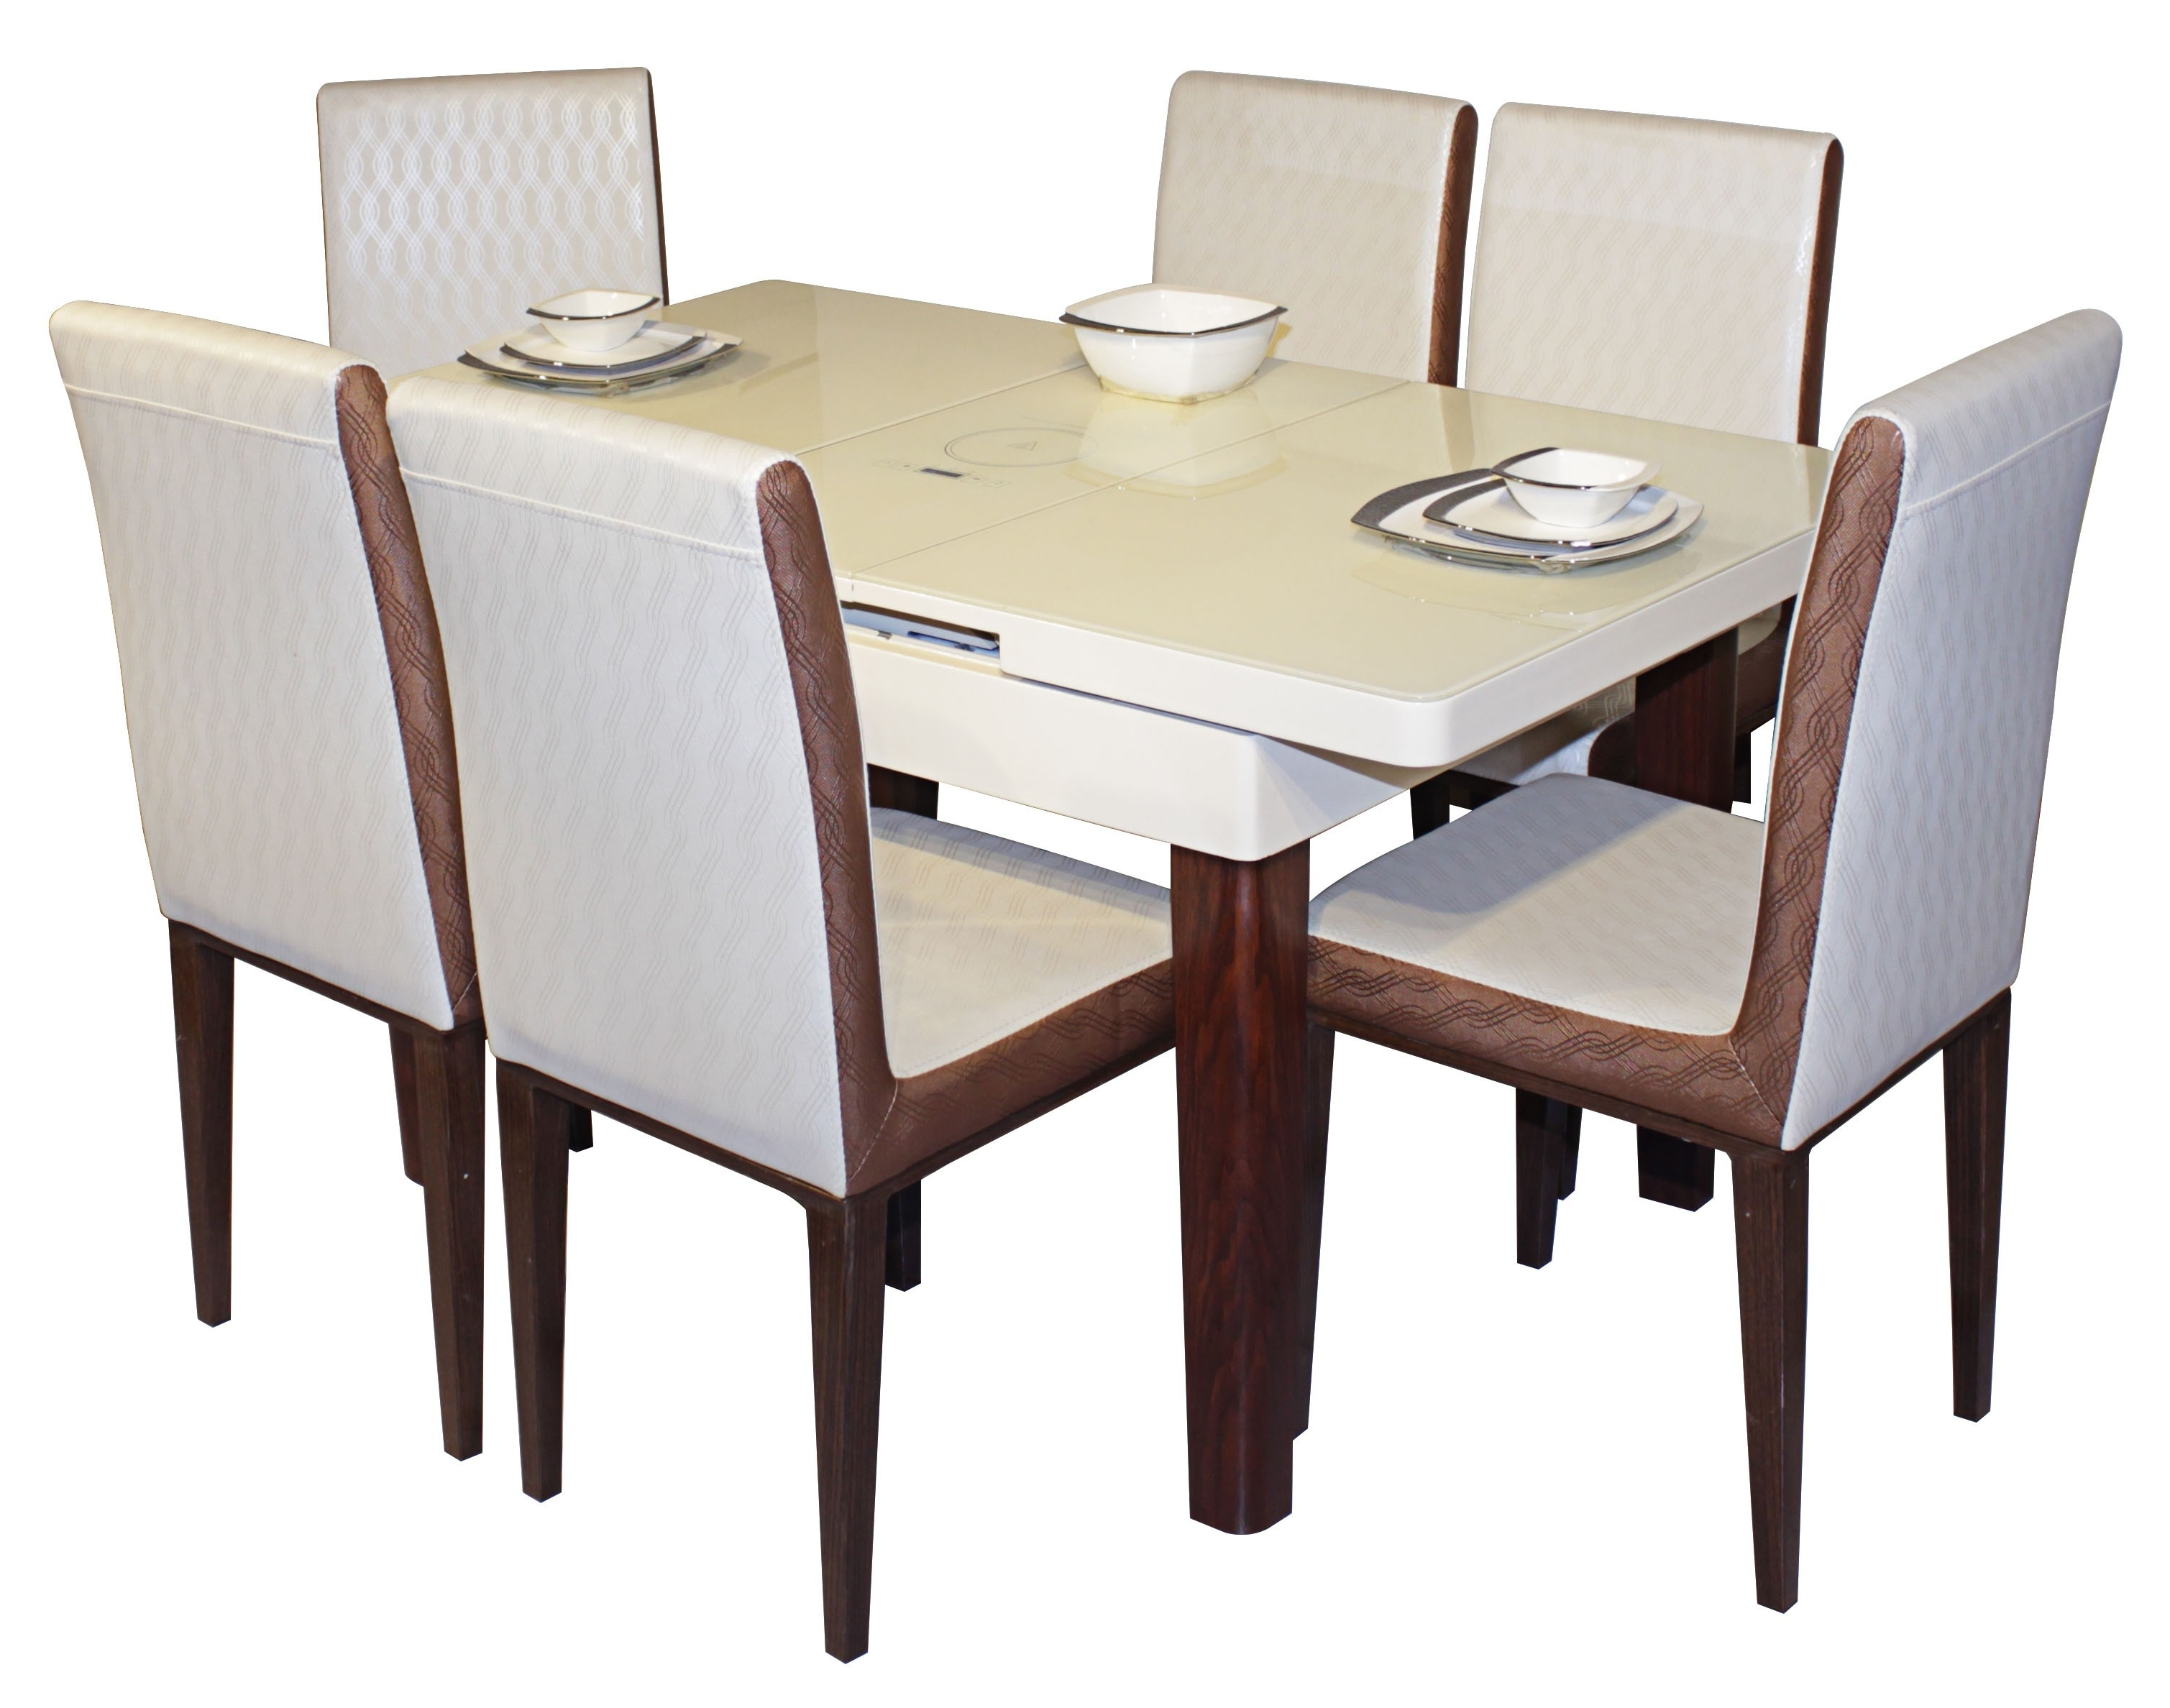 Most Popular 6 Seater Dining Table And Chairs 6 Seater Dining Table And Chairs India Throughout 6 Seat Dining Table Sets (View 24 of 25)